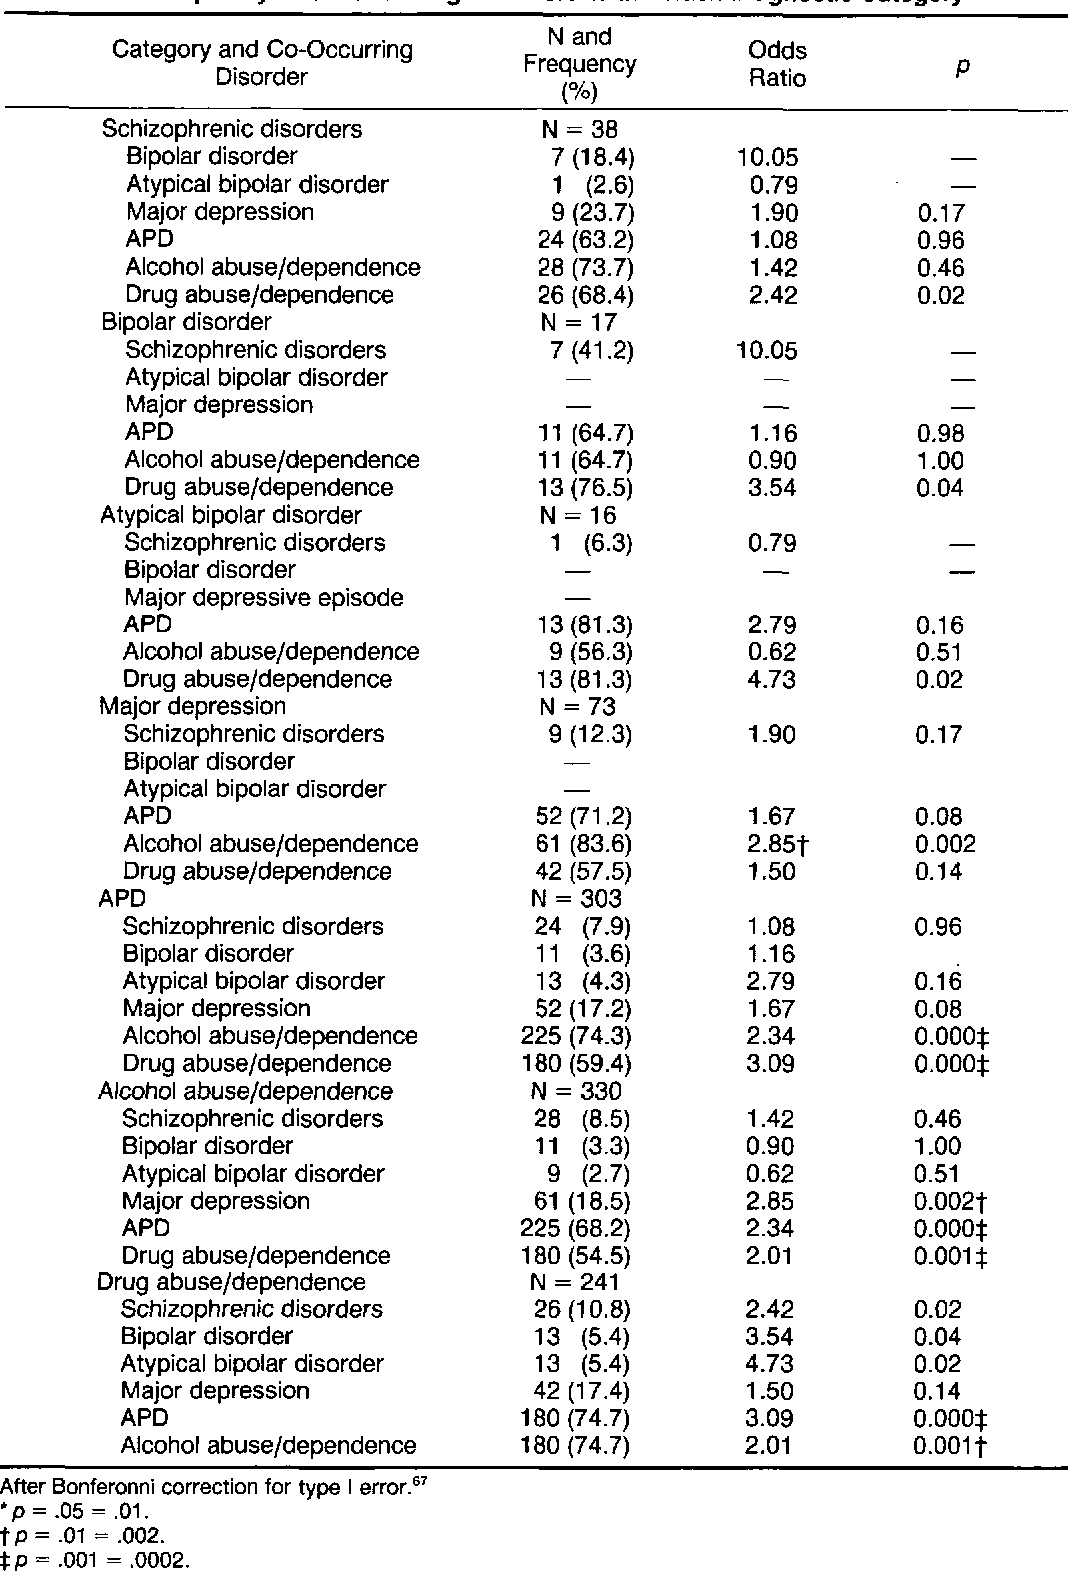 Table 3 Frequency of Co-Occurring Disorders Within Each Diagnostic Category